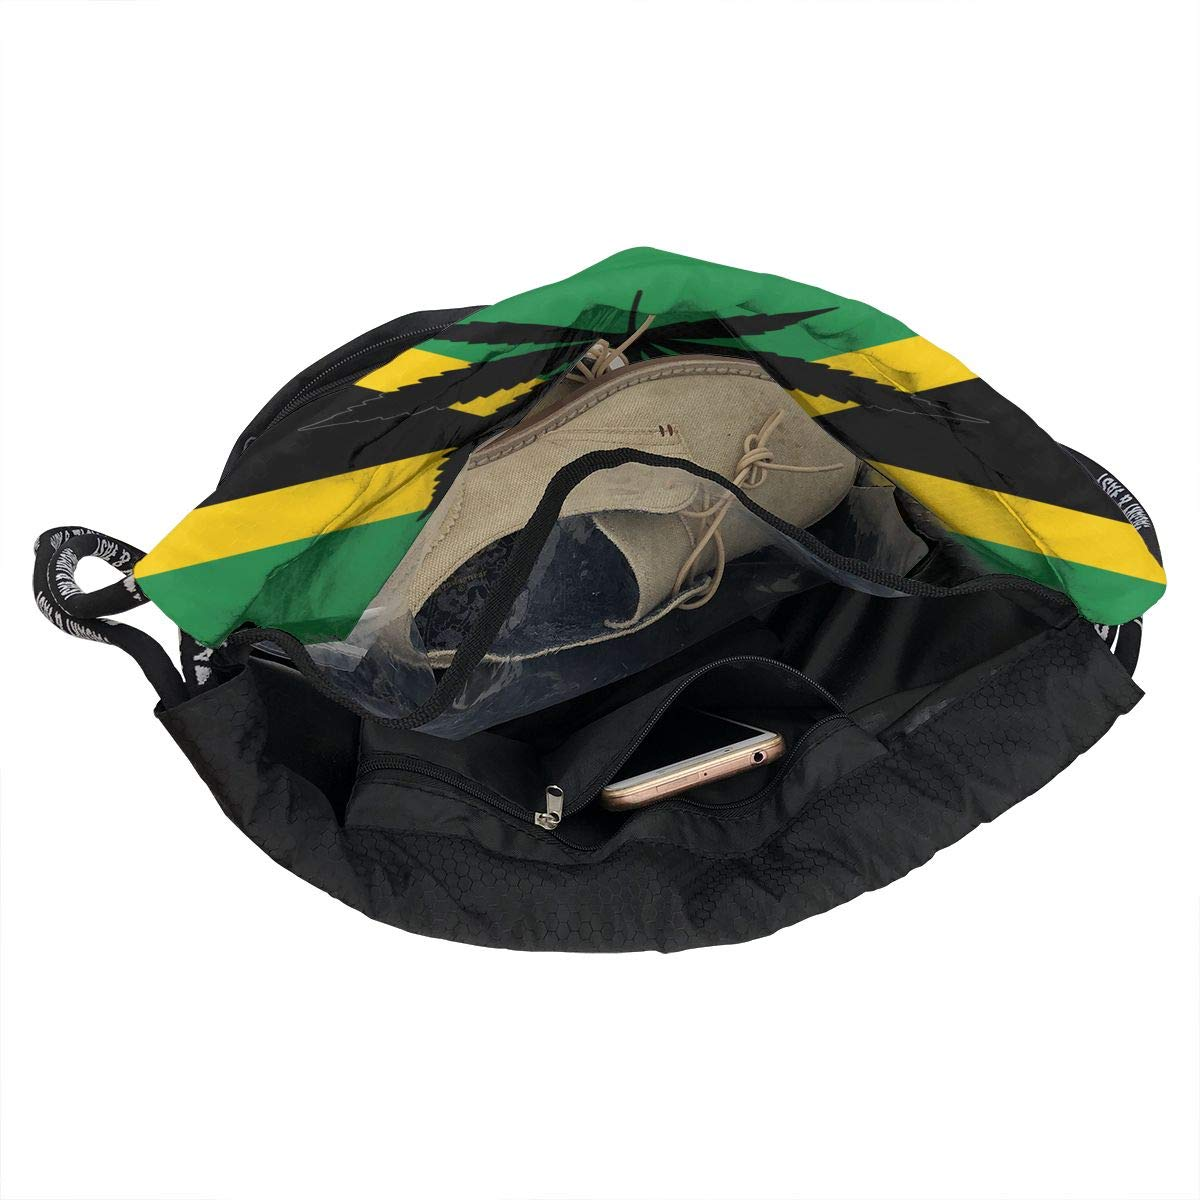 Fashion Outdoor Zipper Drawstring Bag Weed Jamaican Flag Printed Bundle Backpack for Men Women Unisex Multi-Function Backpack